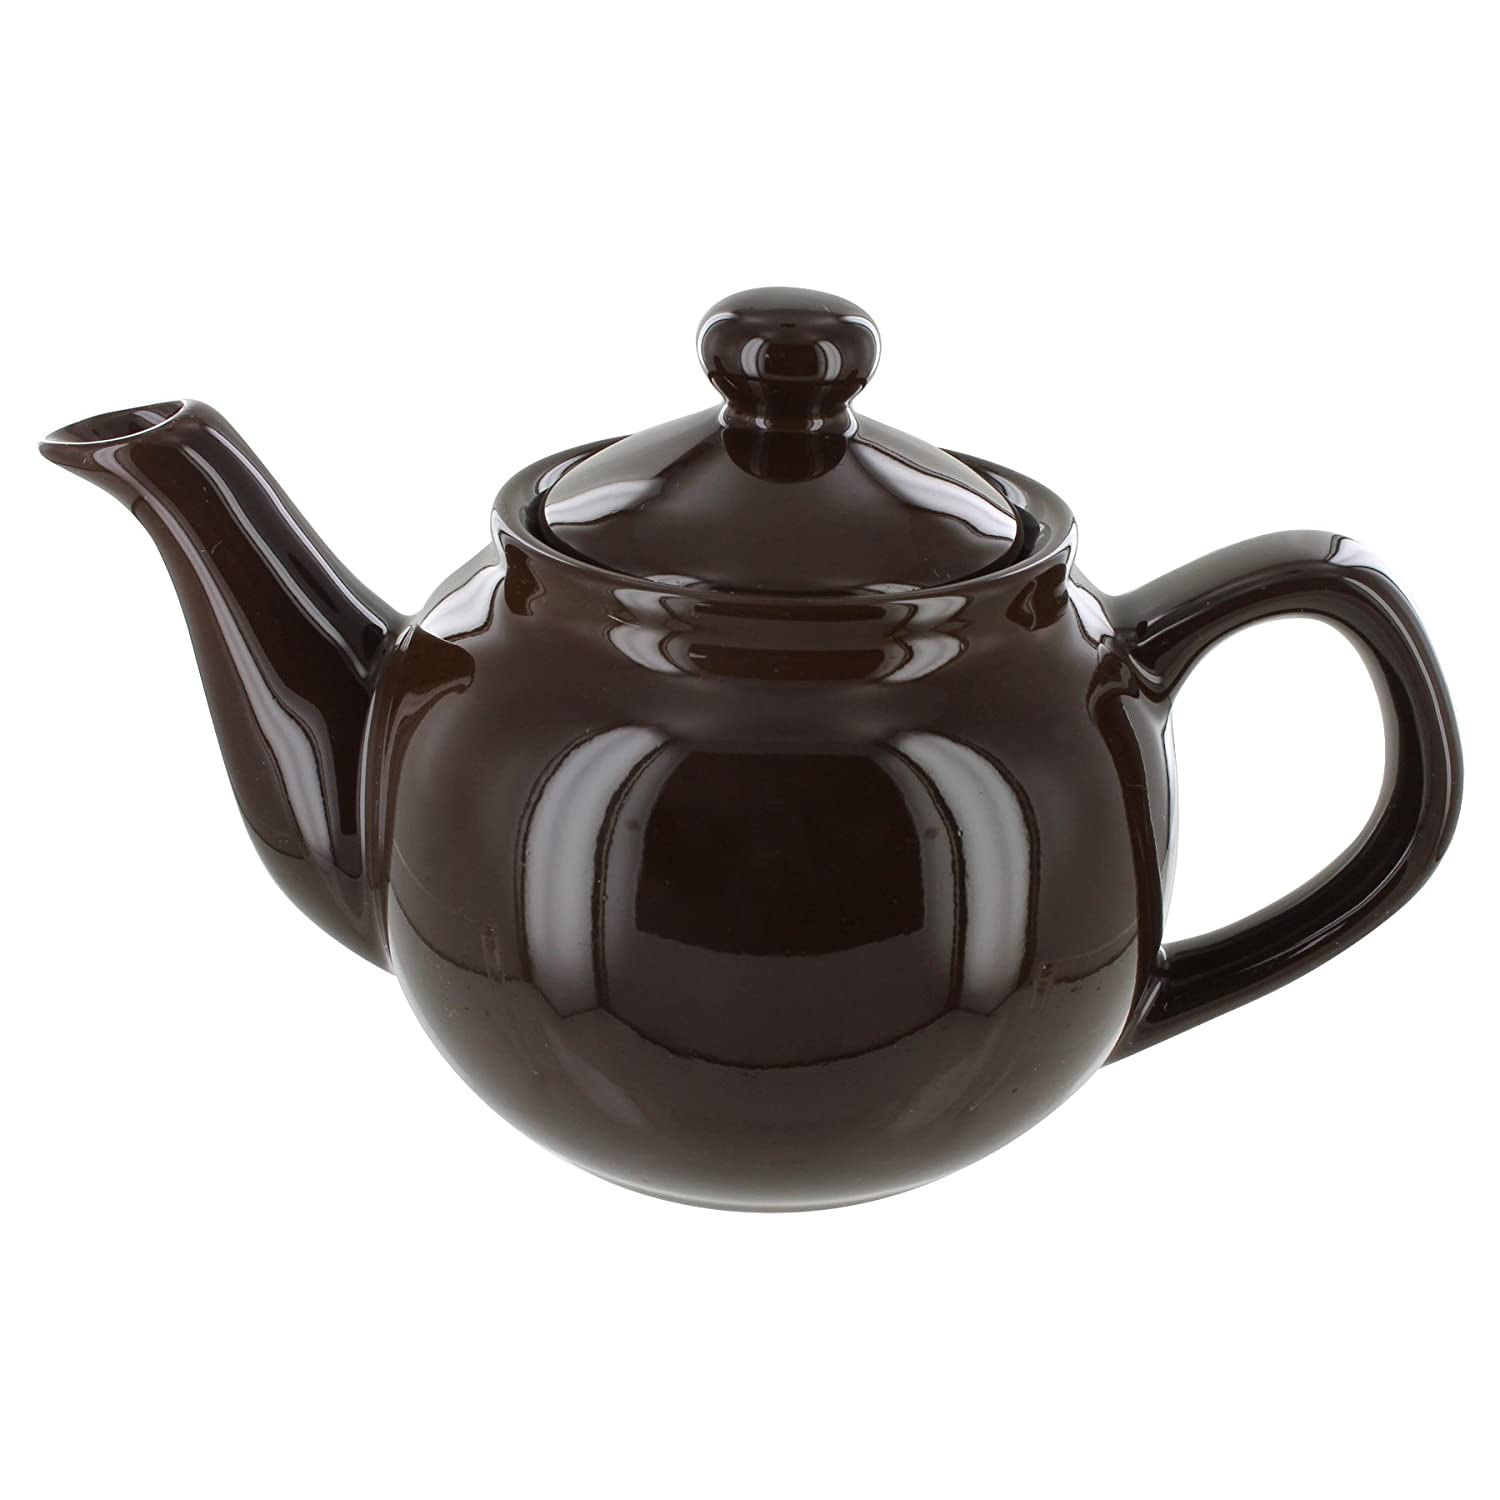 English Tea Store Brand 2 Cup Teapot - Brown Gloss Finish Online Stores Inc. AMS2C-Black